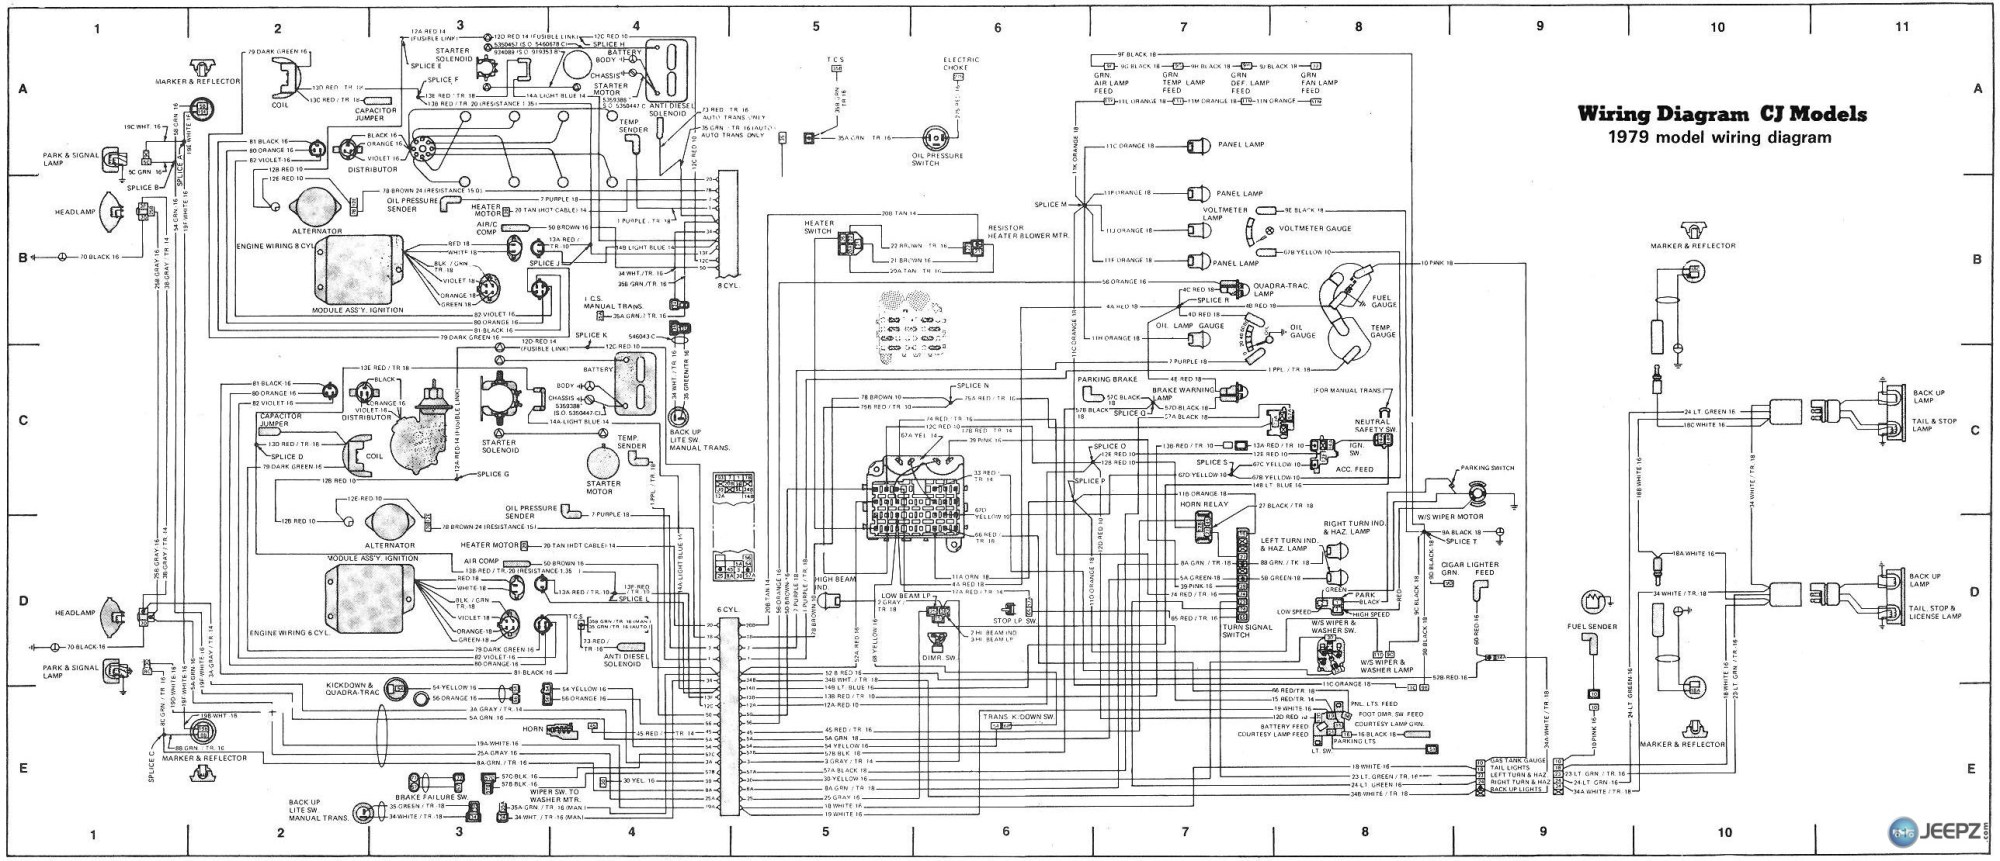 hight resolution of cj jeep wire harness diagram wiring diagram forward cj 7 wiring diagram everything wiring diagram cj